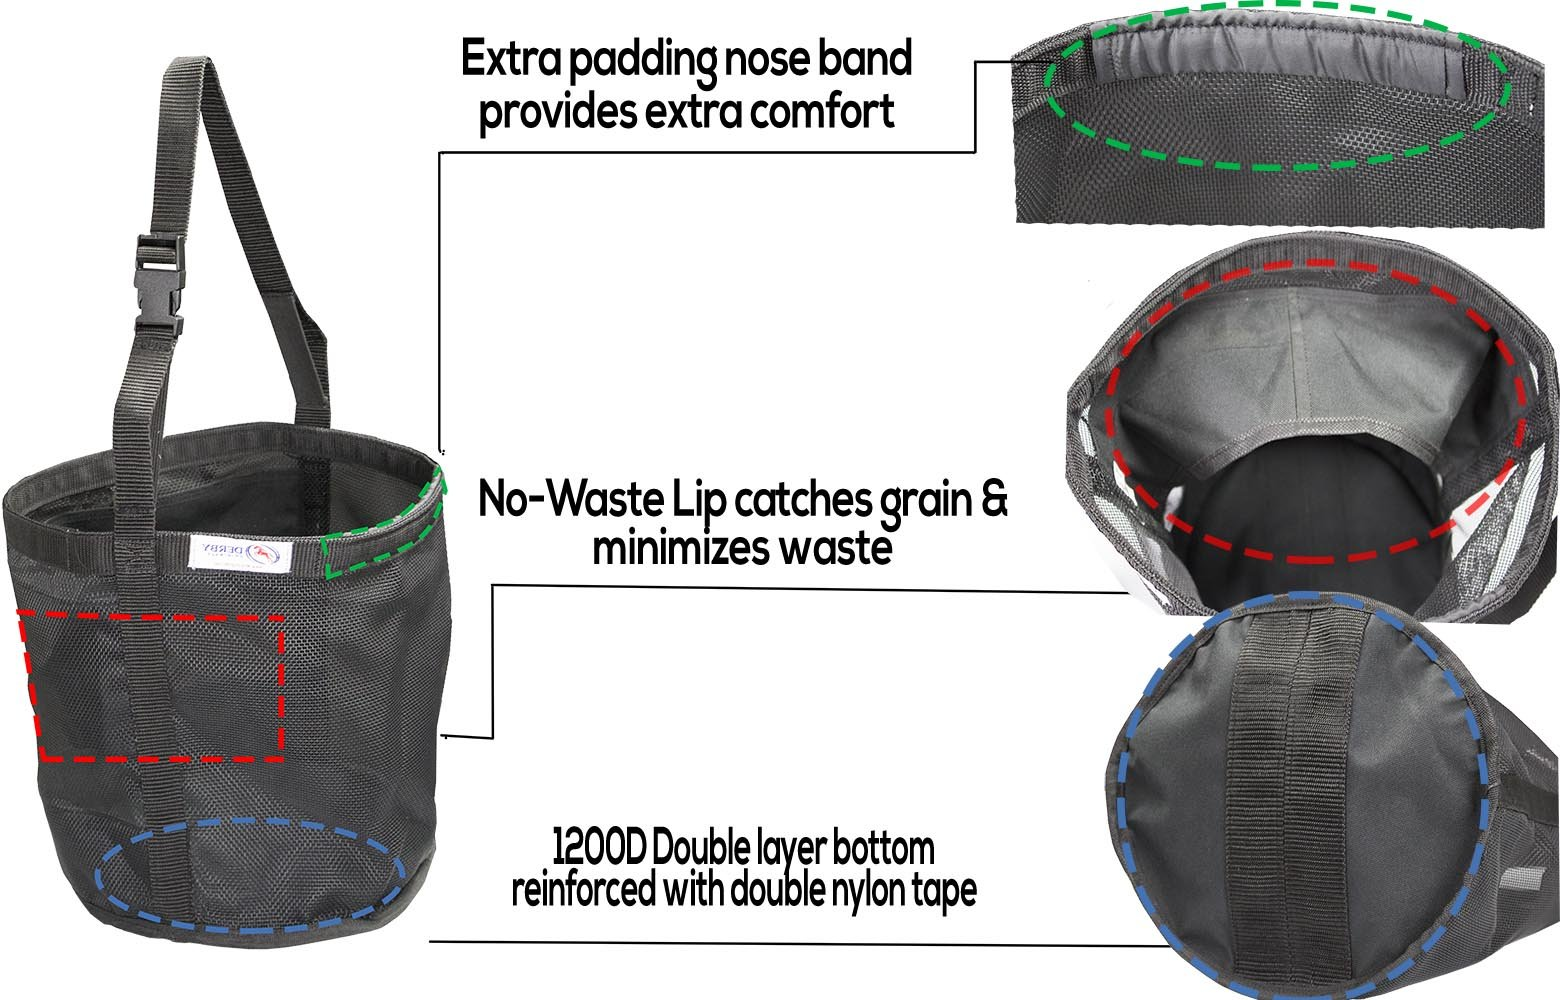 Derby Originals Heavy Duty Pvc Mesh Feed Bag With Extra Comfort Noseband Padding No Waste Flap Design